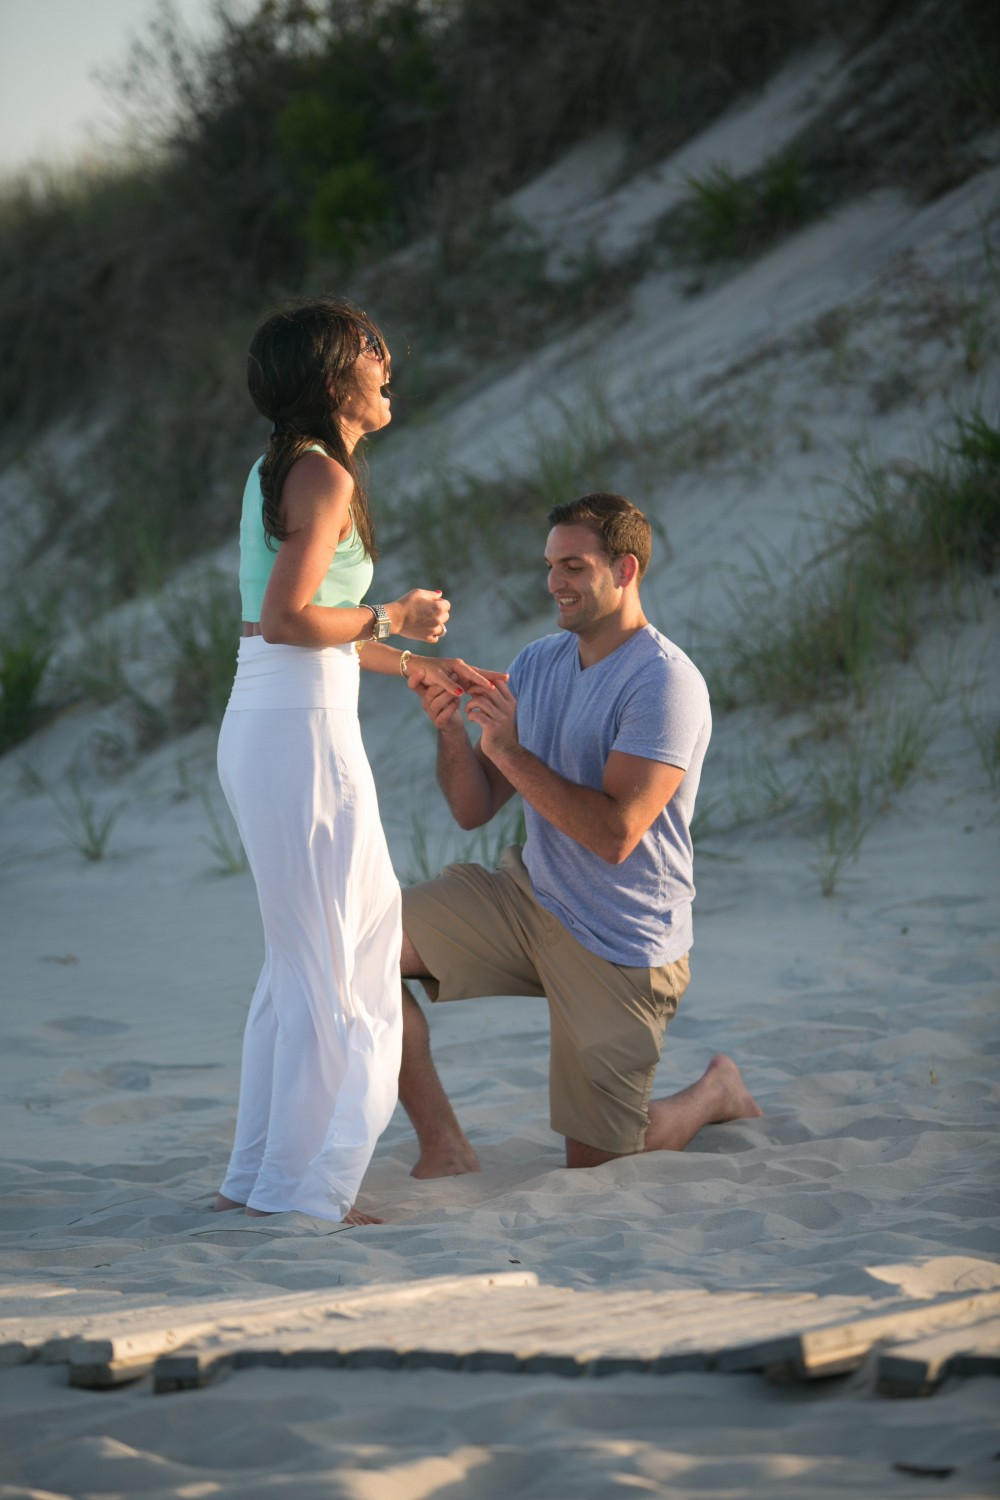 Image 11 of This Girl's Proposal Reaction is The Best We've Ever Seen.